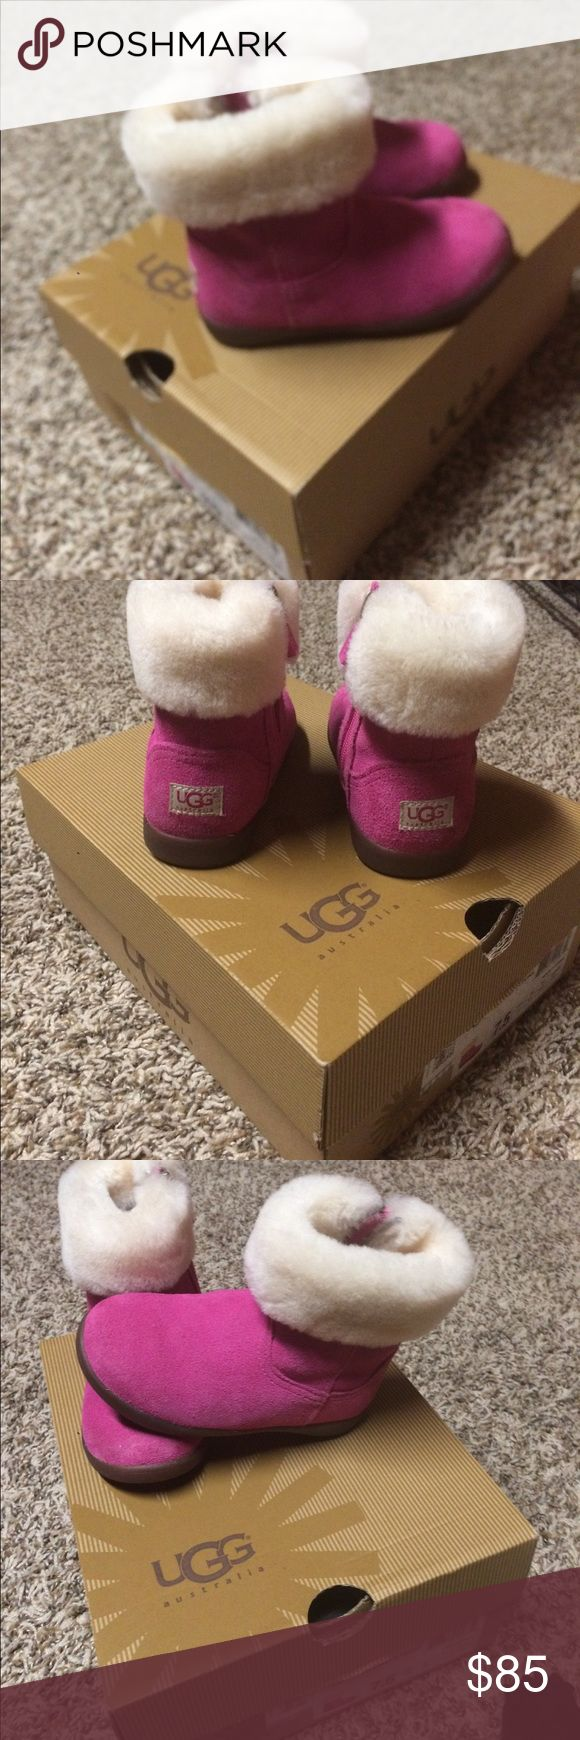 Kids ping ugg low boots Omg how can I start to describe these little adorable absolutely the cutest things pink low boot uggs worn once for an hr n put back awY would look great with jeans skirt or even sweat pants so so darn cute 😫😘😘😍🙂 UGG Shoes Boots